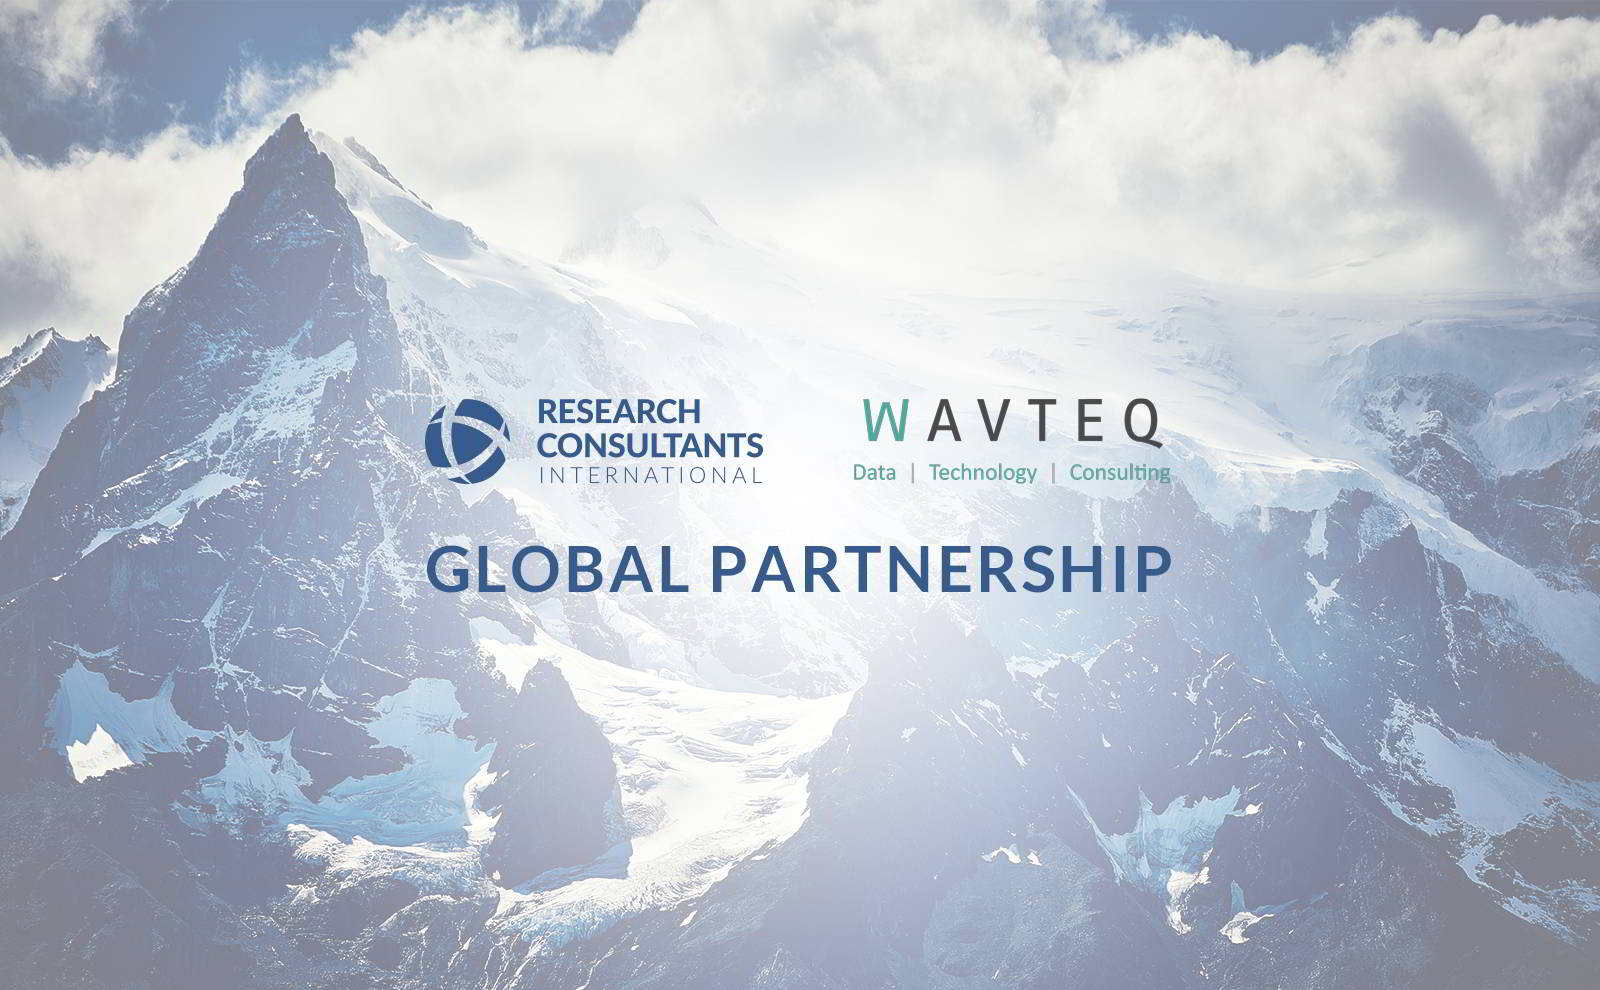 Research Consultants International partnership with WAVETEQ